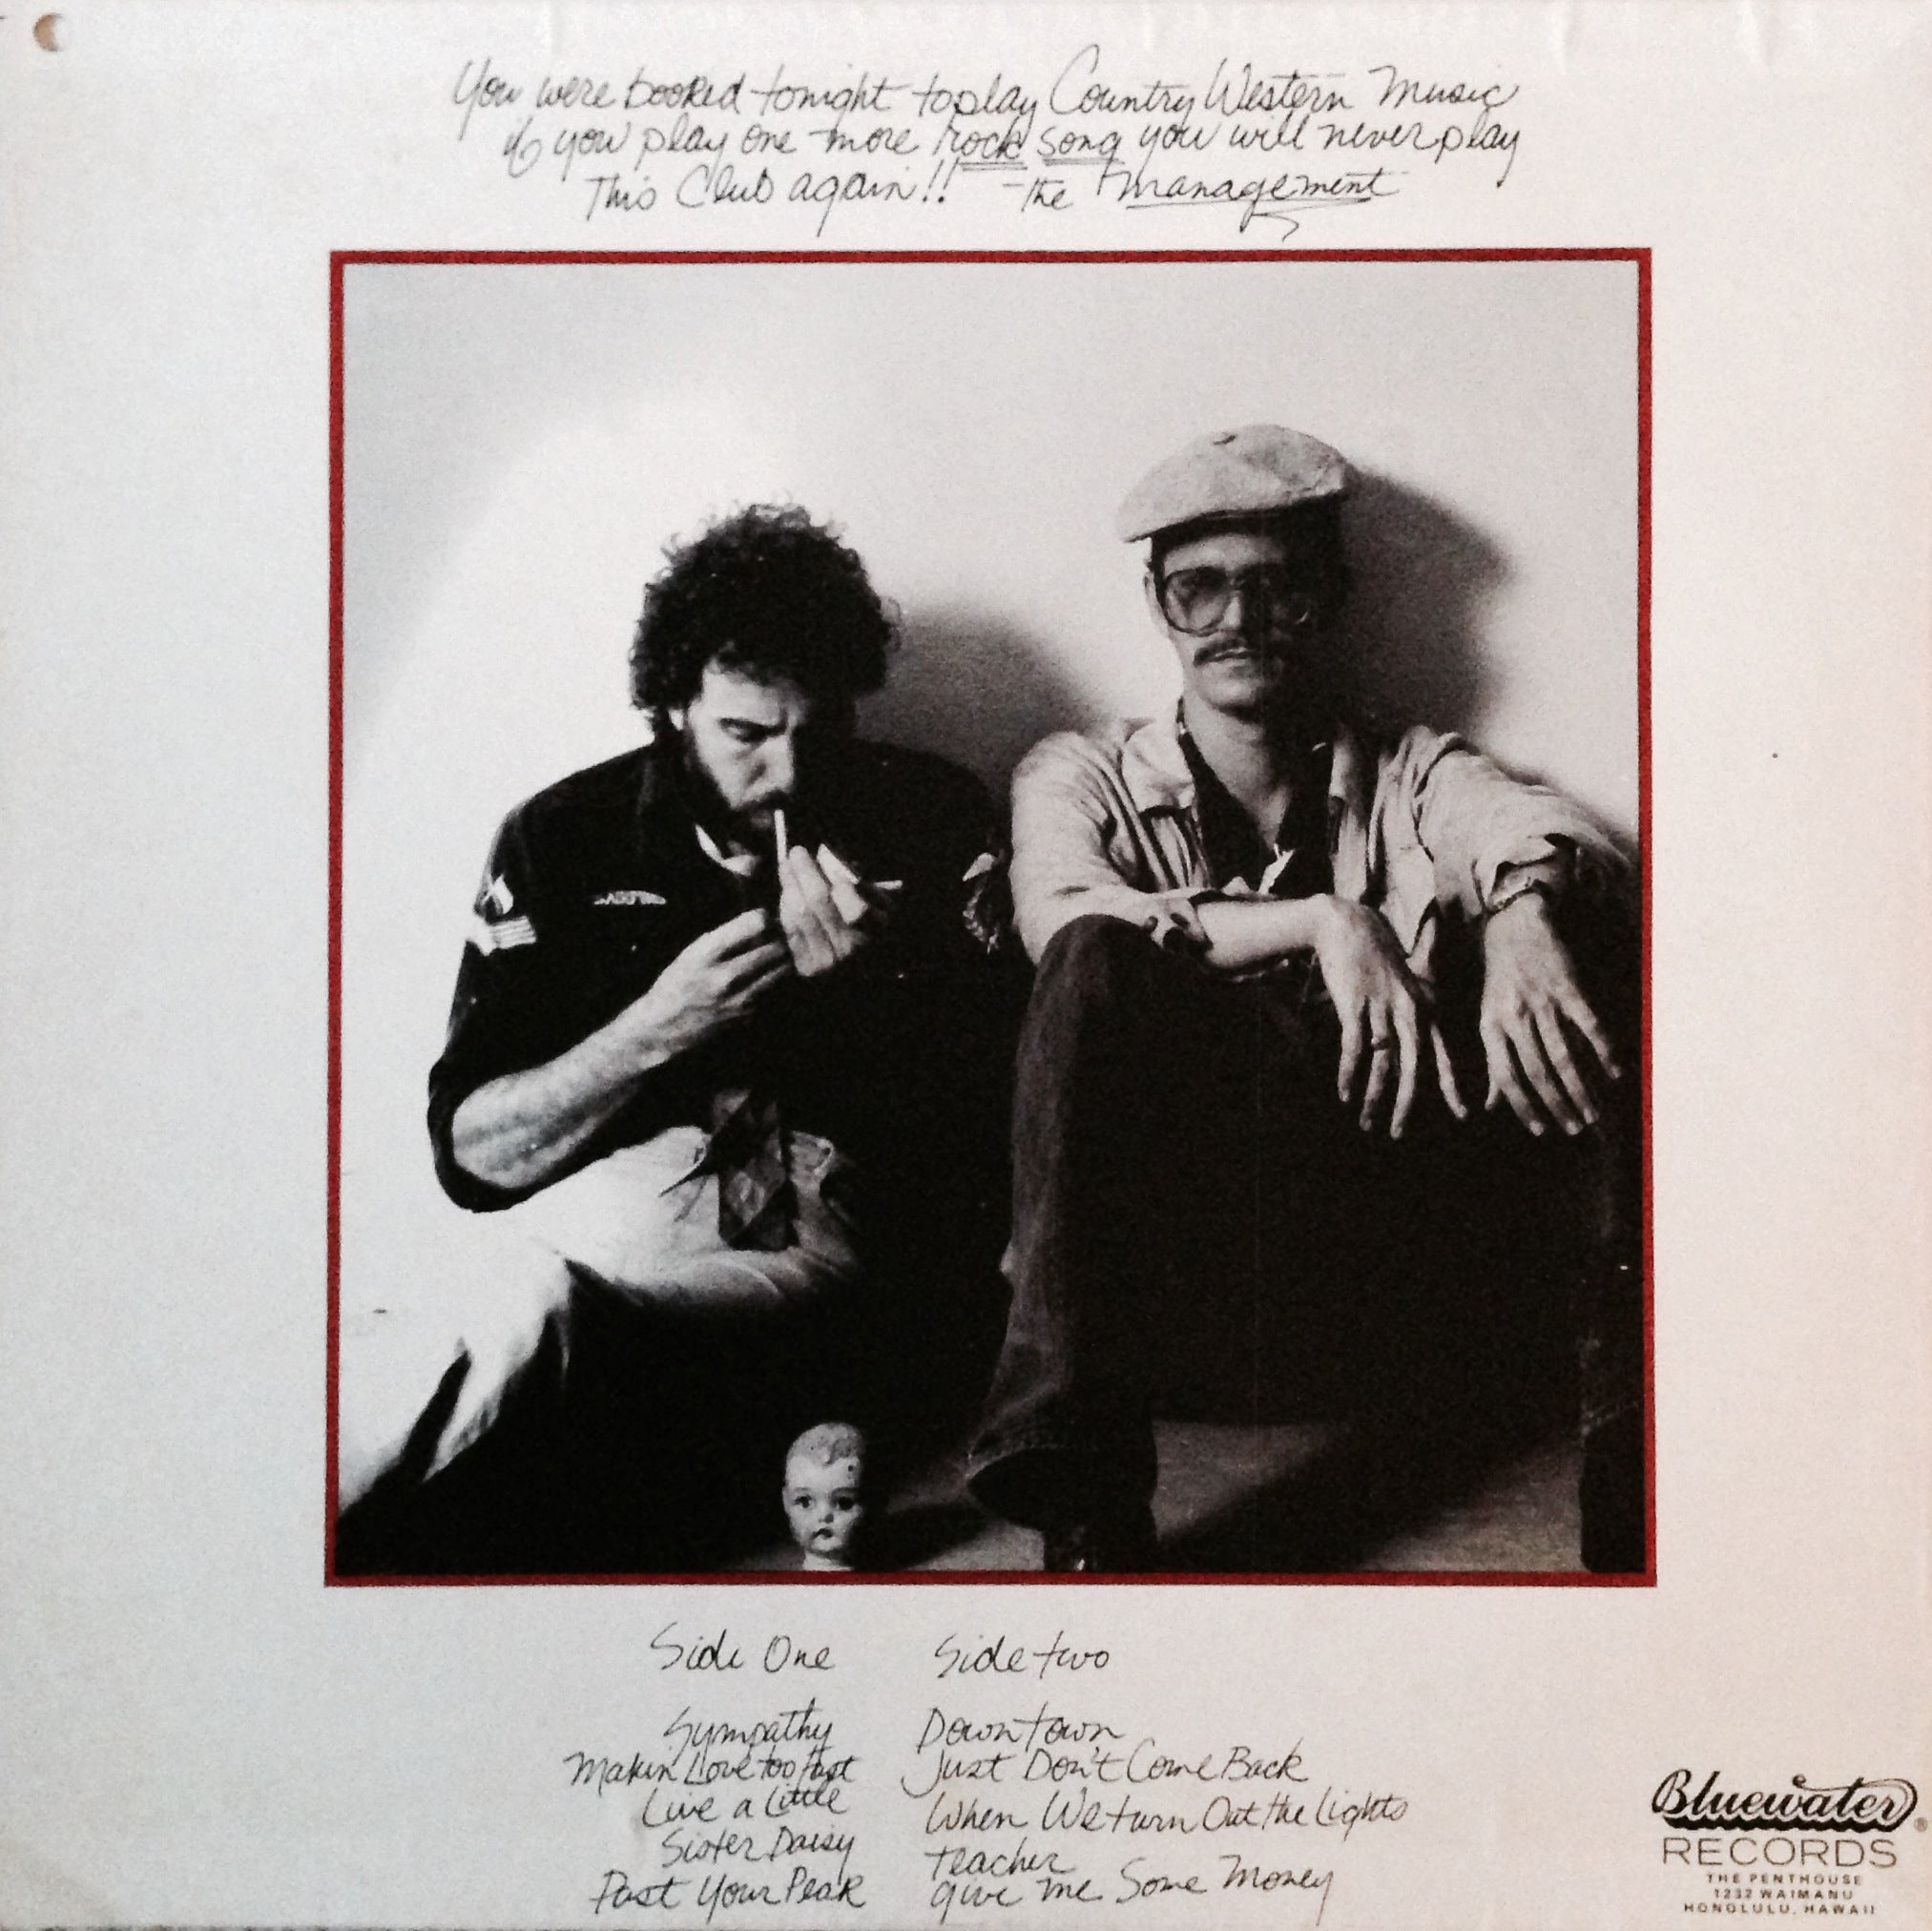 Roy & Roe - back cover